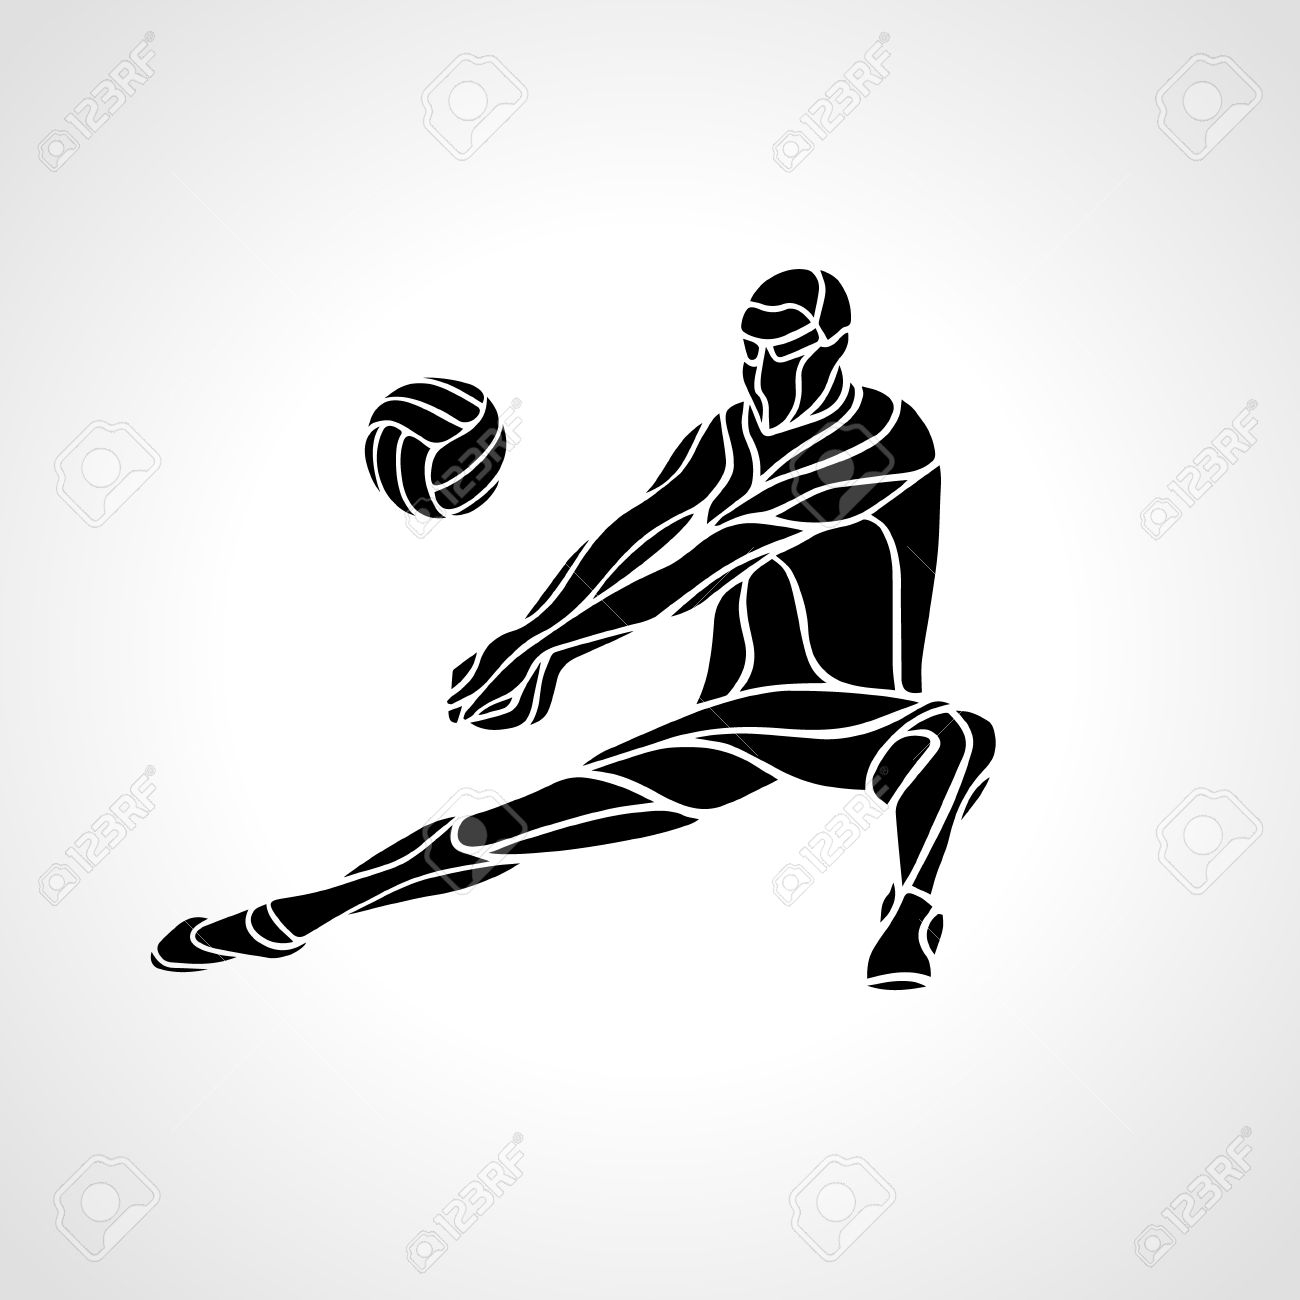 Volleyball Player Receiving Feed Silhouette Of A Abstract Volleyball Royalty Free Cliparts Vectors And Stock Illustration Image 55873975